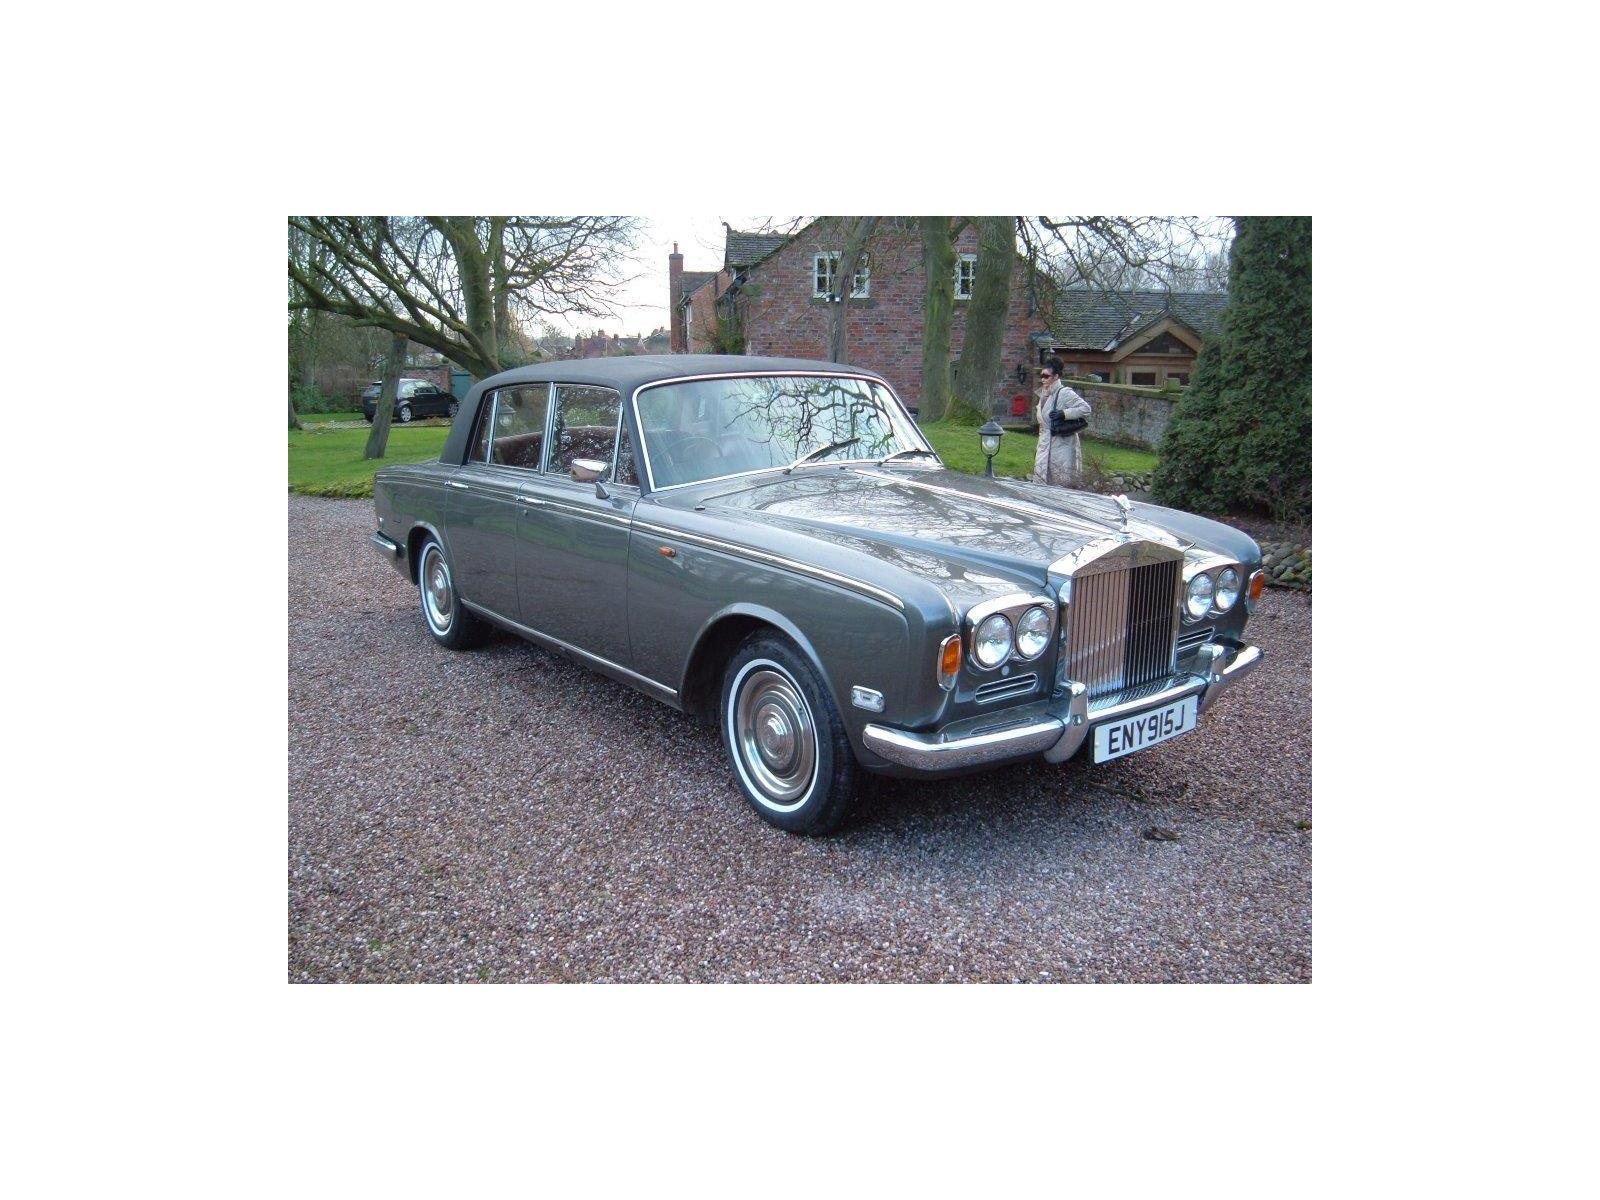 1970 ROLLS ROYCE SILVER SHADOW I 4 DOOR SALOON